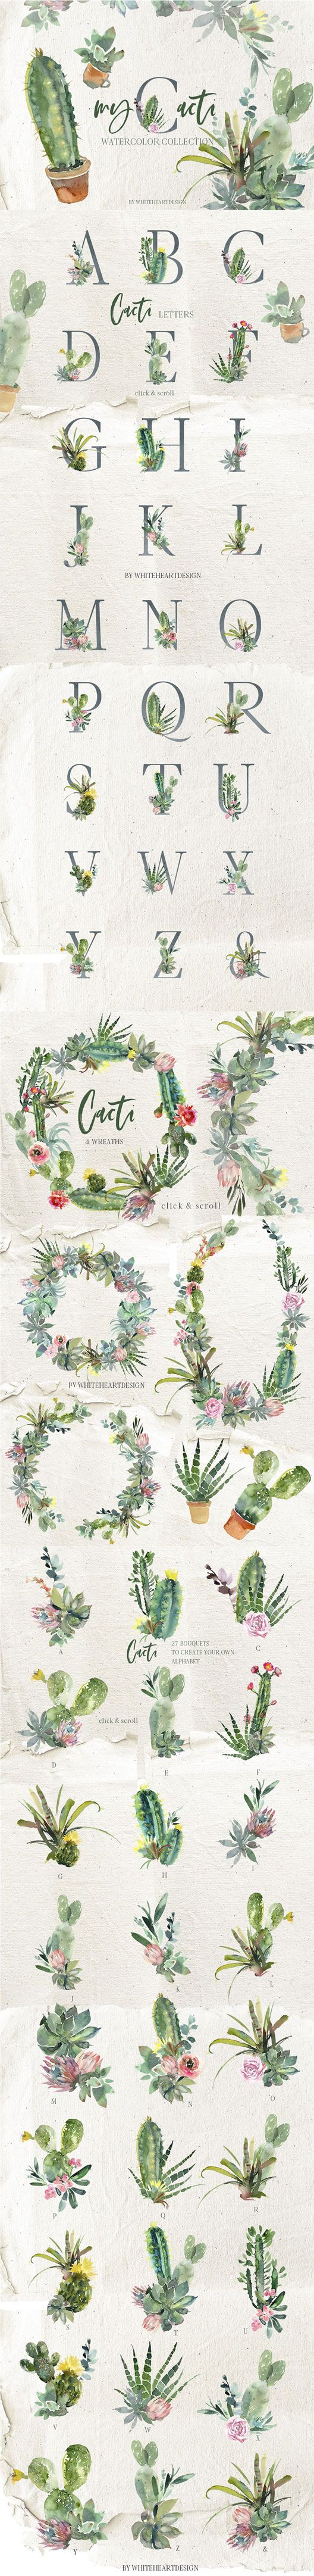 Cacti watercolor clipart & font collection of pretty